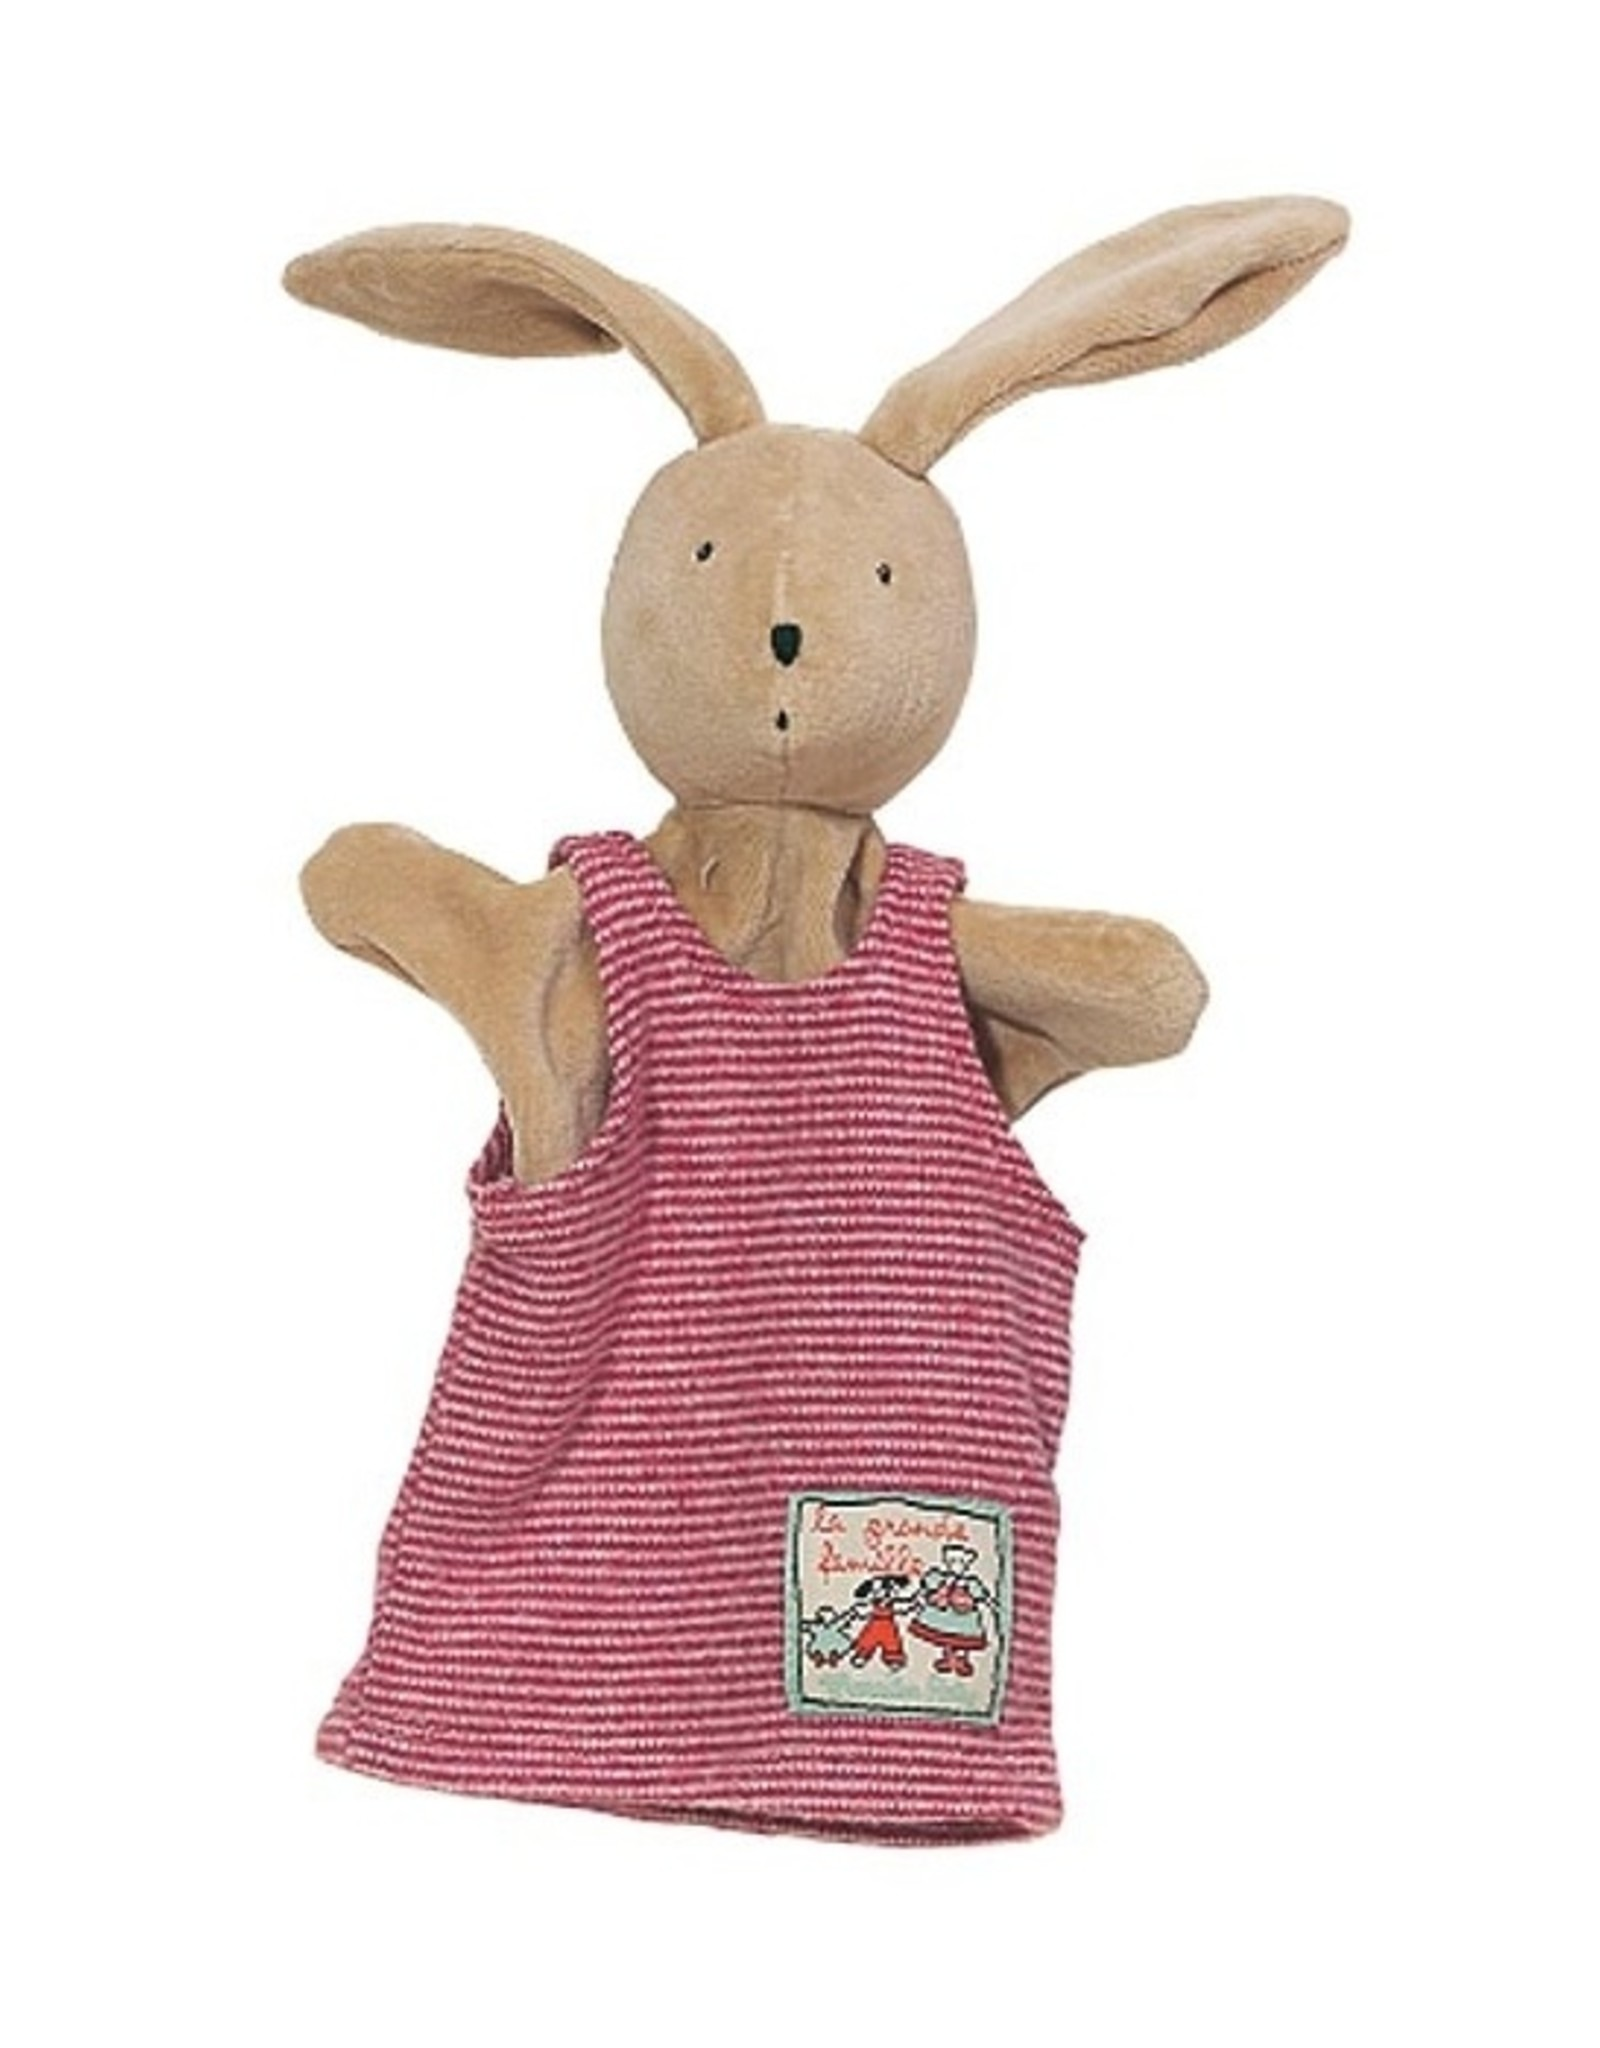 Moulin Roty Sylvain, the rabbit puppet